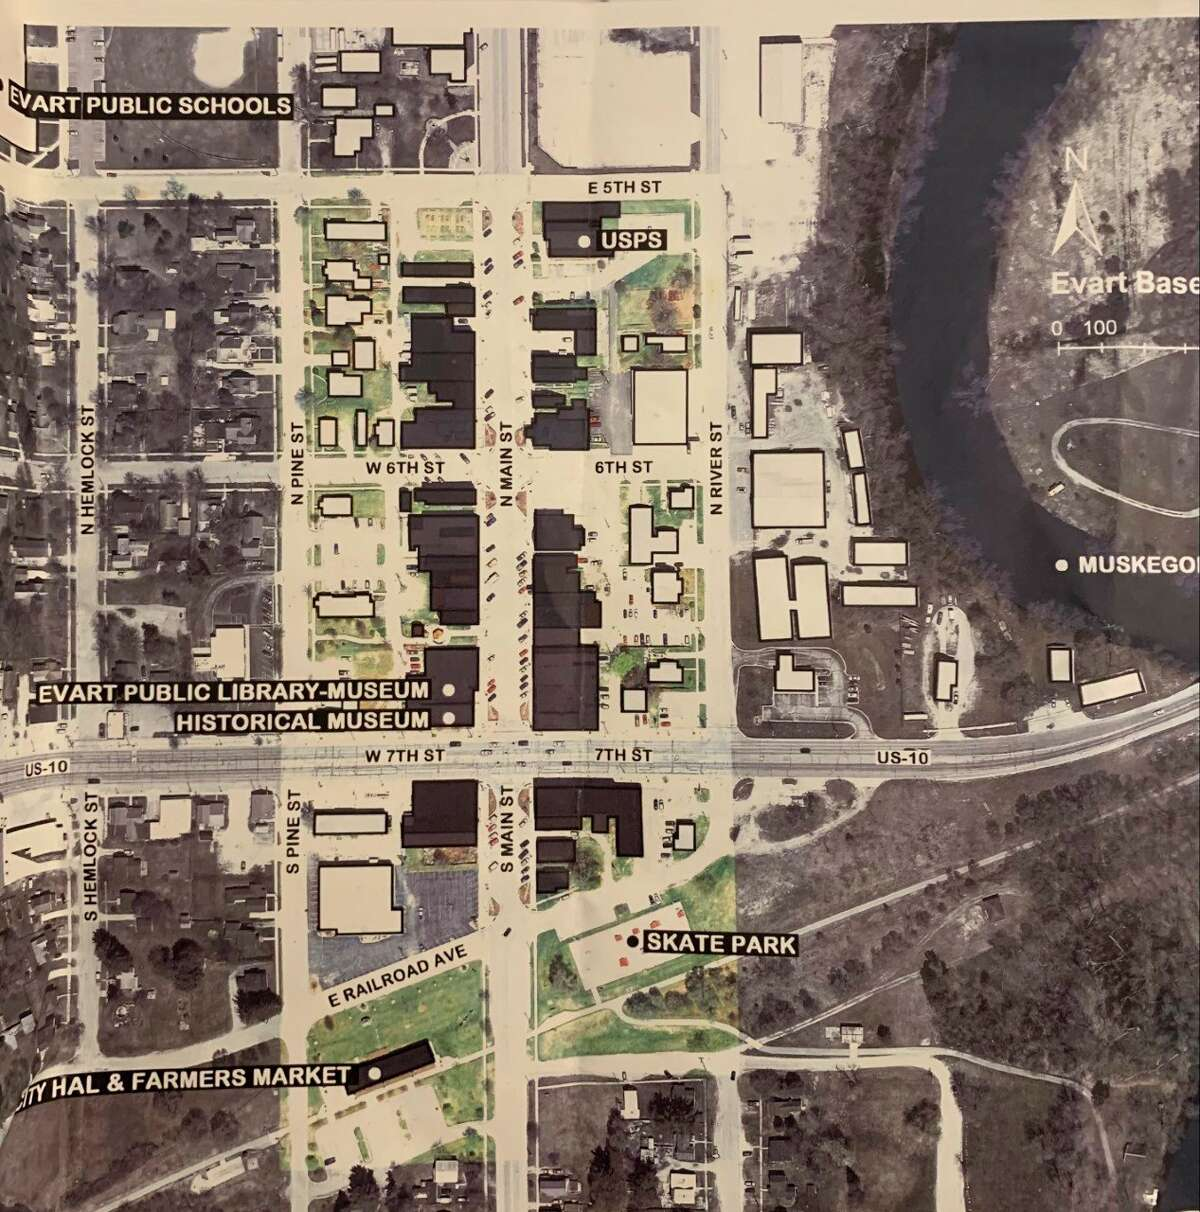 The Evart DDA main Street project includes enhancing walkability and connectivity between the city and the river, as well as between different areas of the city. (Photo courtesy of Evart DDA)